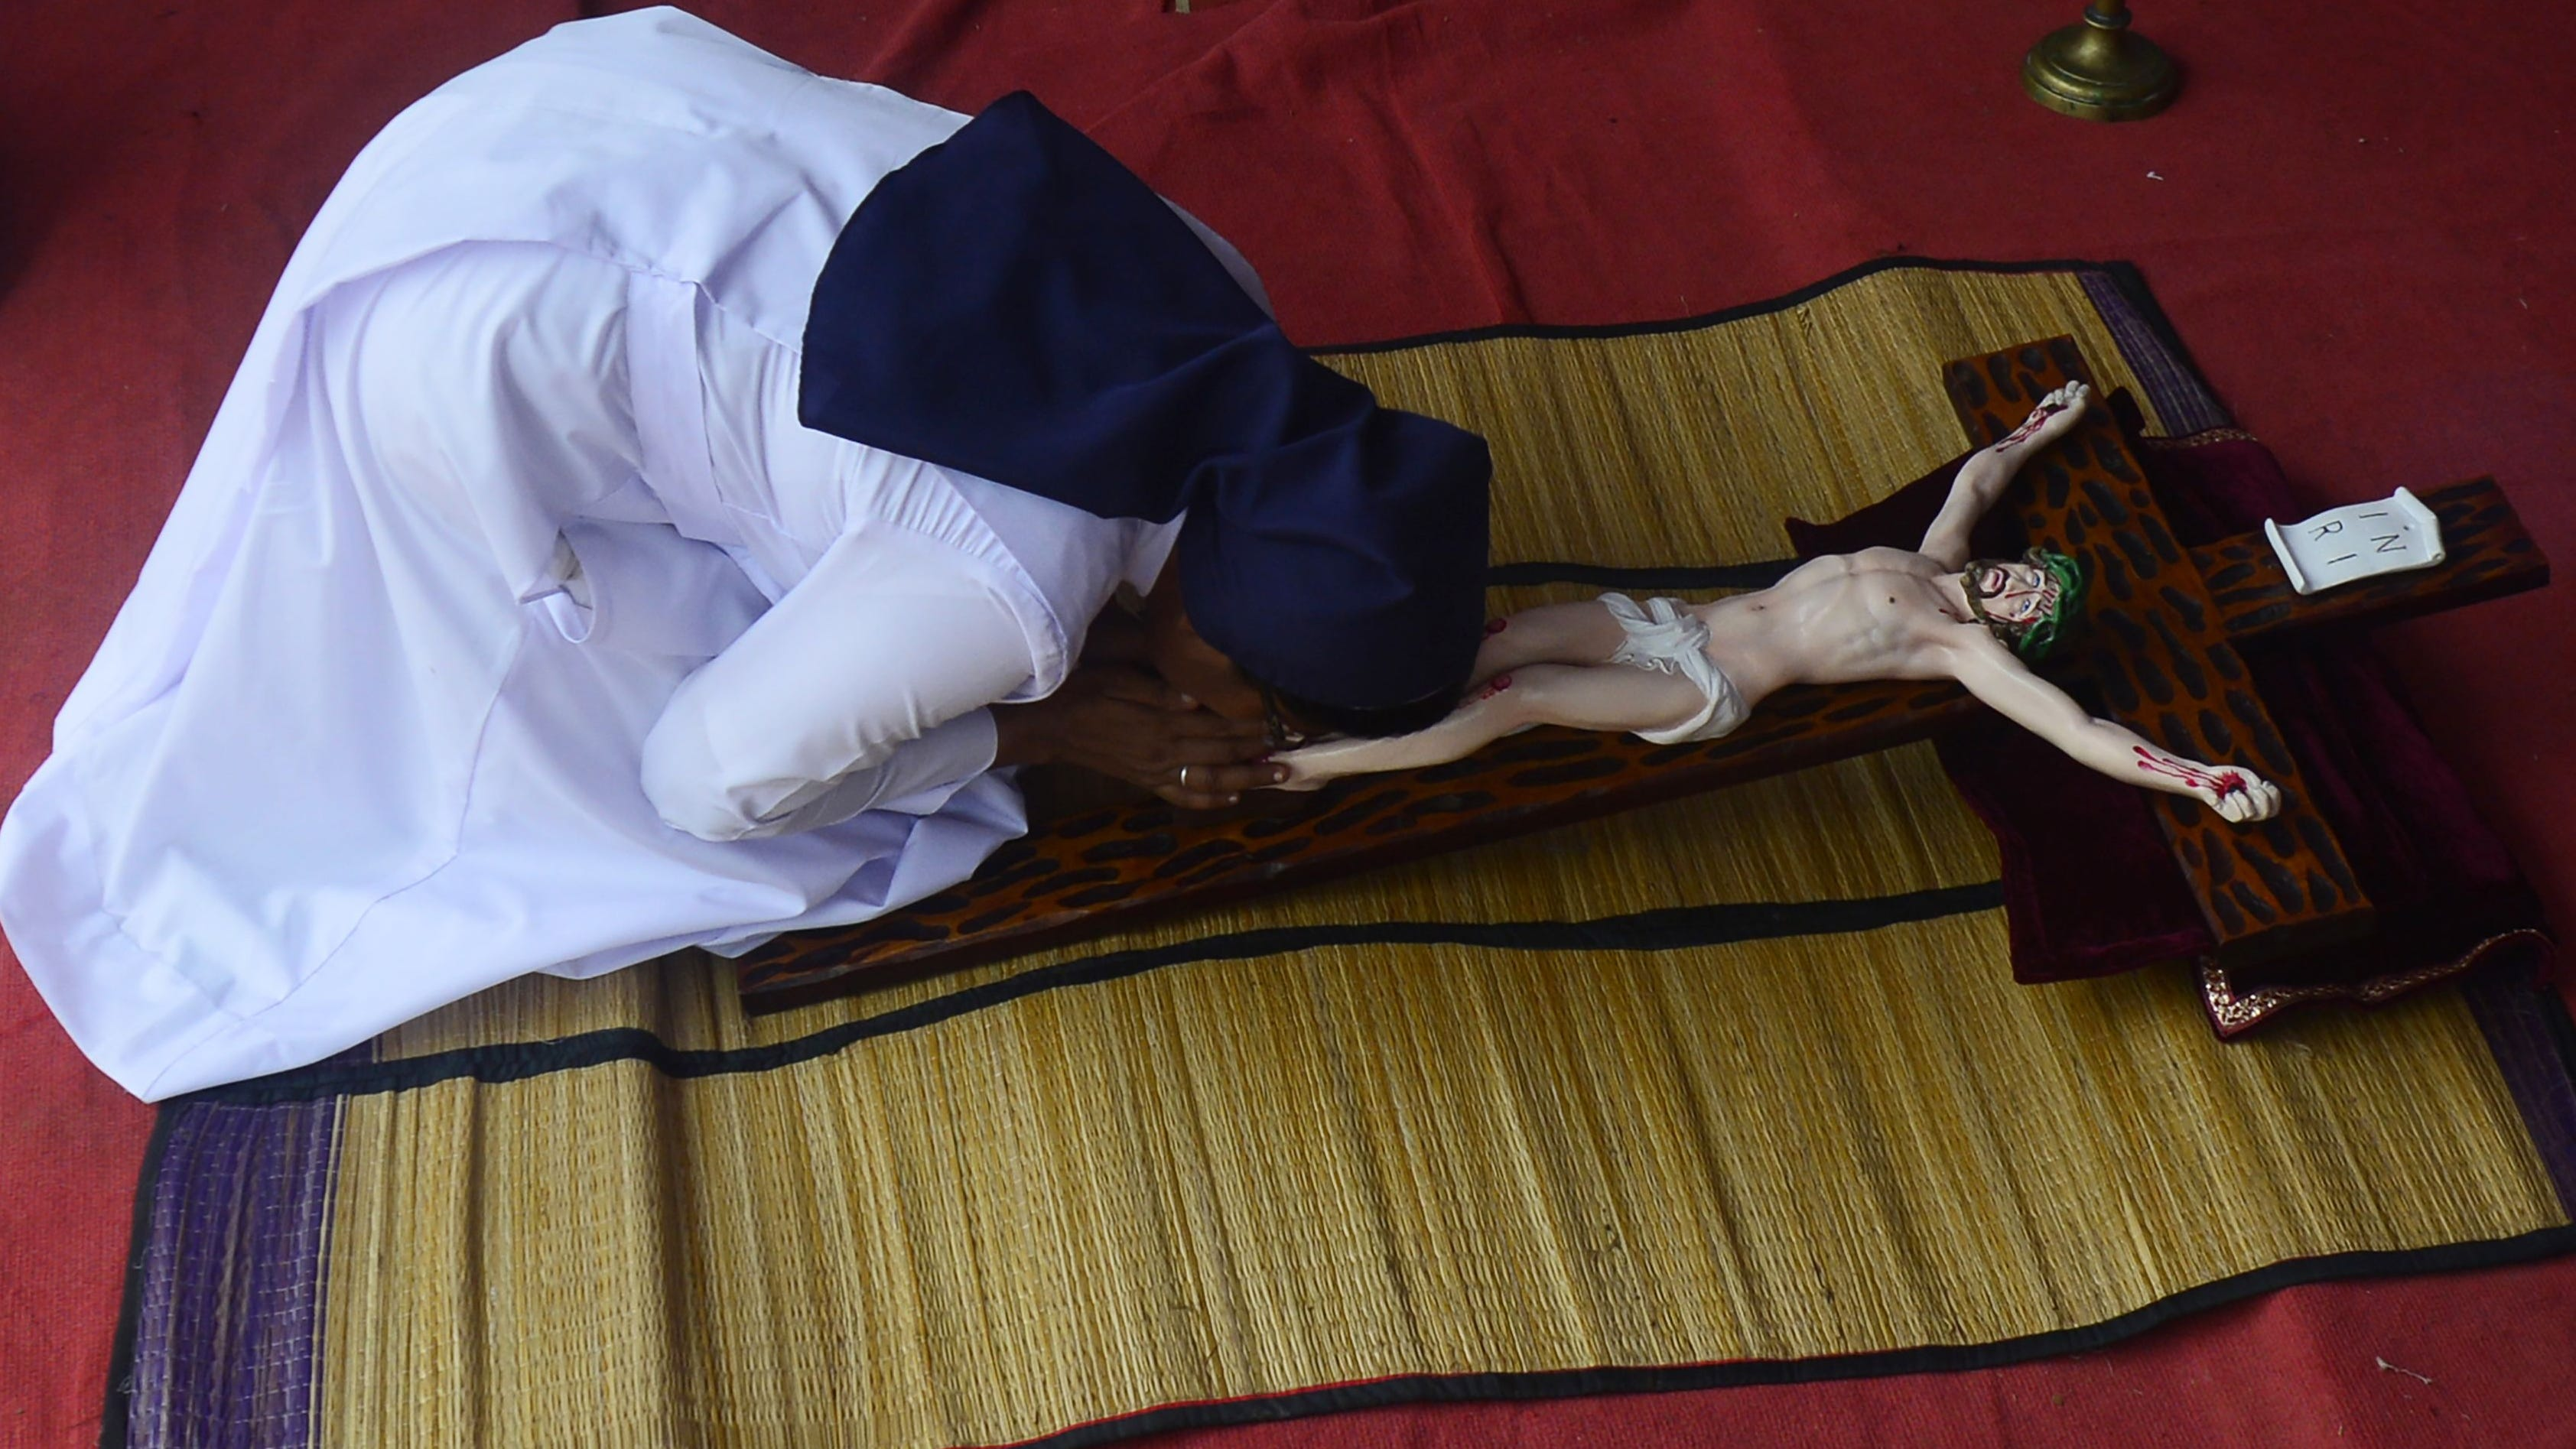 A Sri Lankan nun kisses the feet of an effigy of Jesus Christ on a cross during mass on Good Friday in Katukurunda village on April 19, 2019. Christians account for around six percent of Sri Lanka's 20 million population.